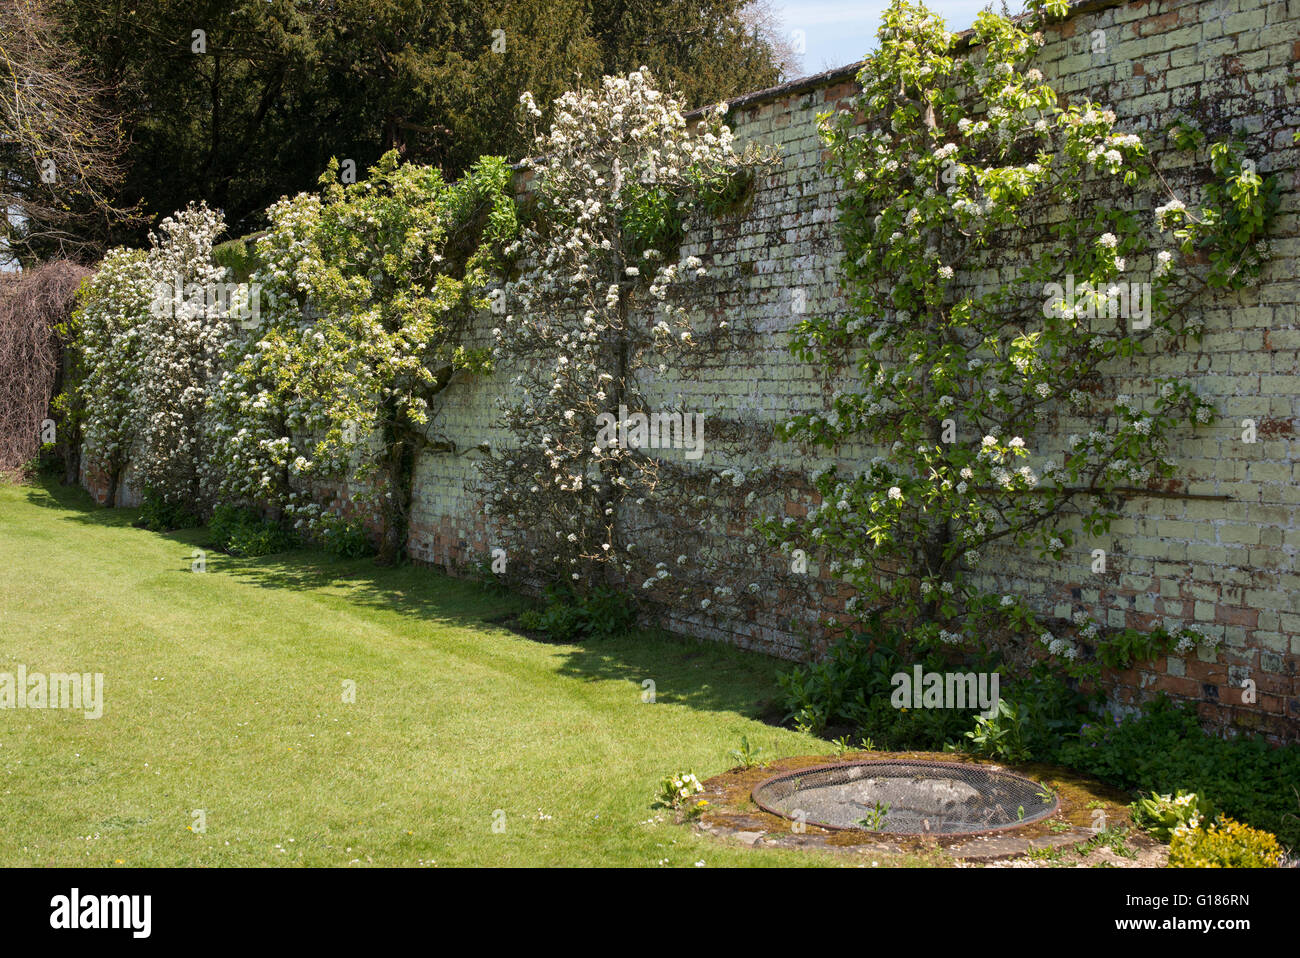 Wonderful Espalier Fruit Trees In Blossom Against The Walled Garden At Rousham House  And Garden. Oxfordshire